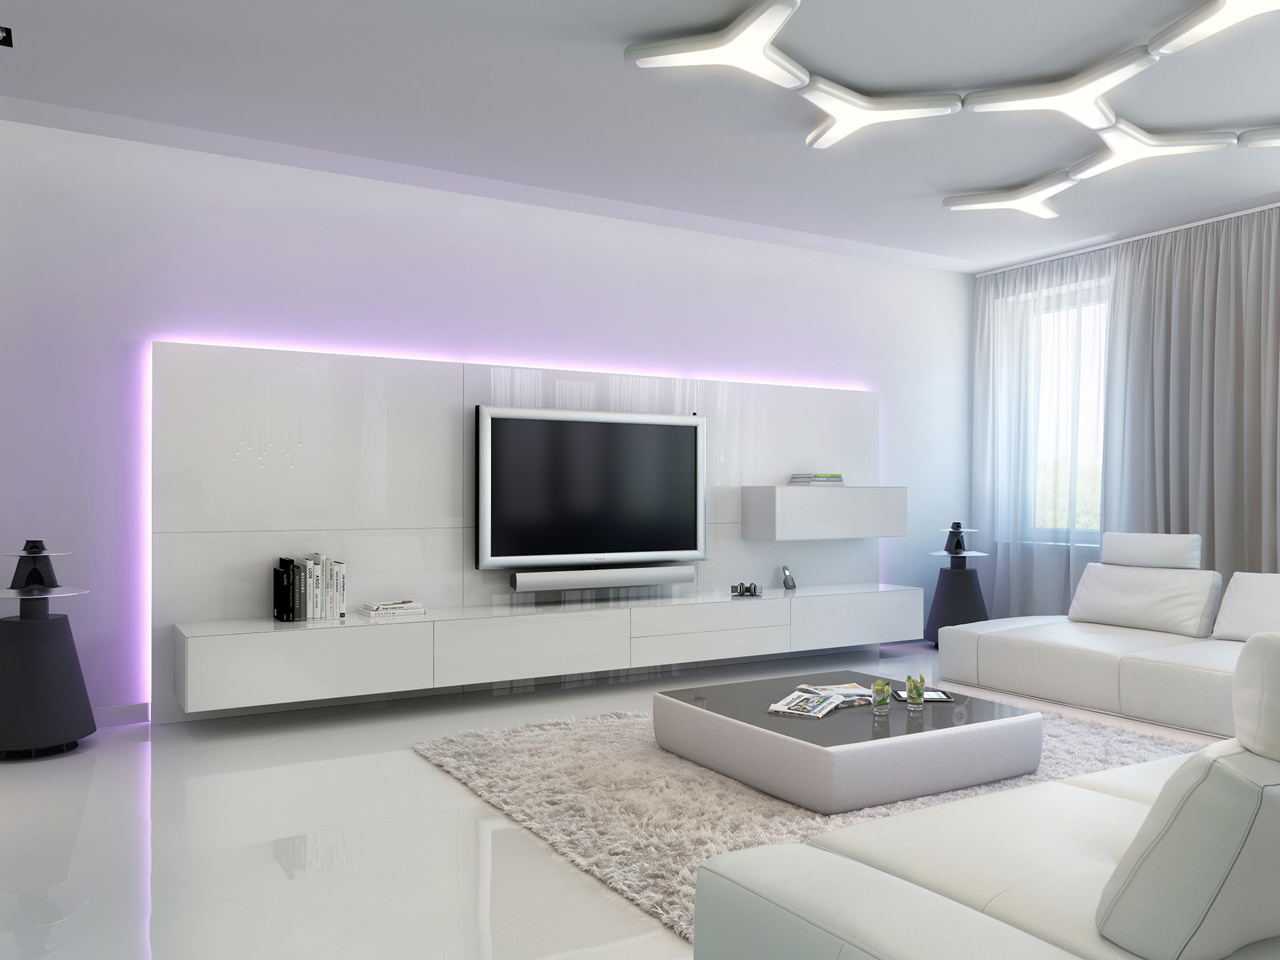 https://cdn.architecturendesign.net/wp-content/uploads/2014/07/2-White-entertainment-wall.jpg